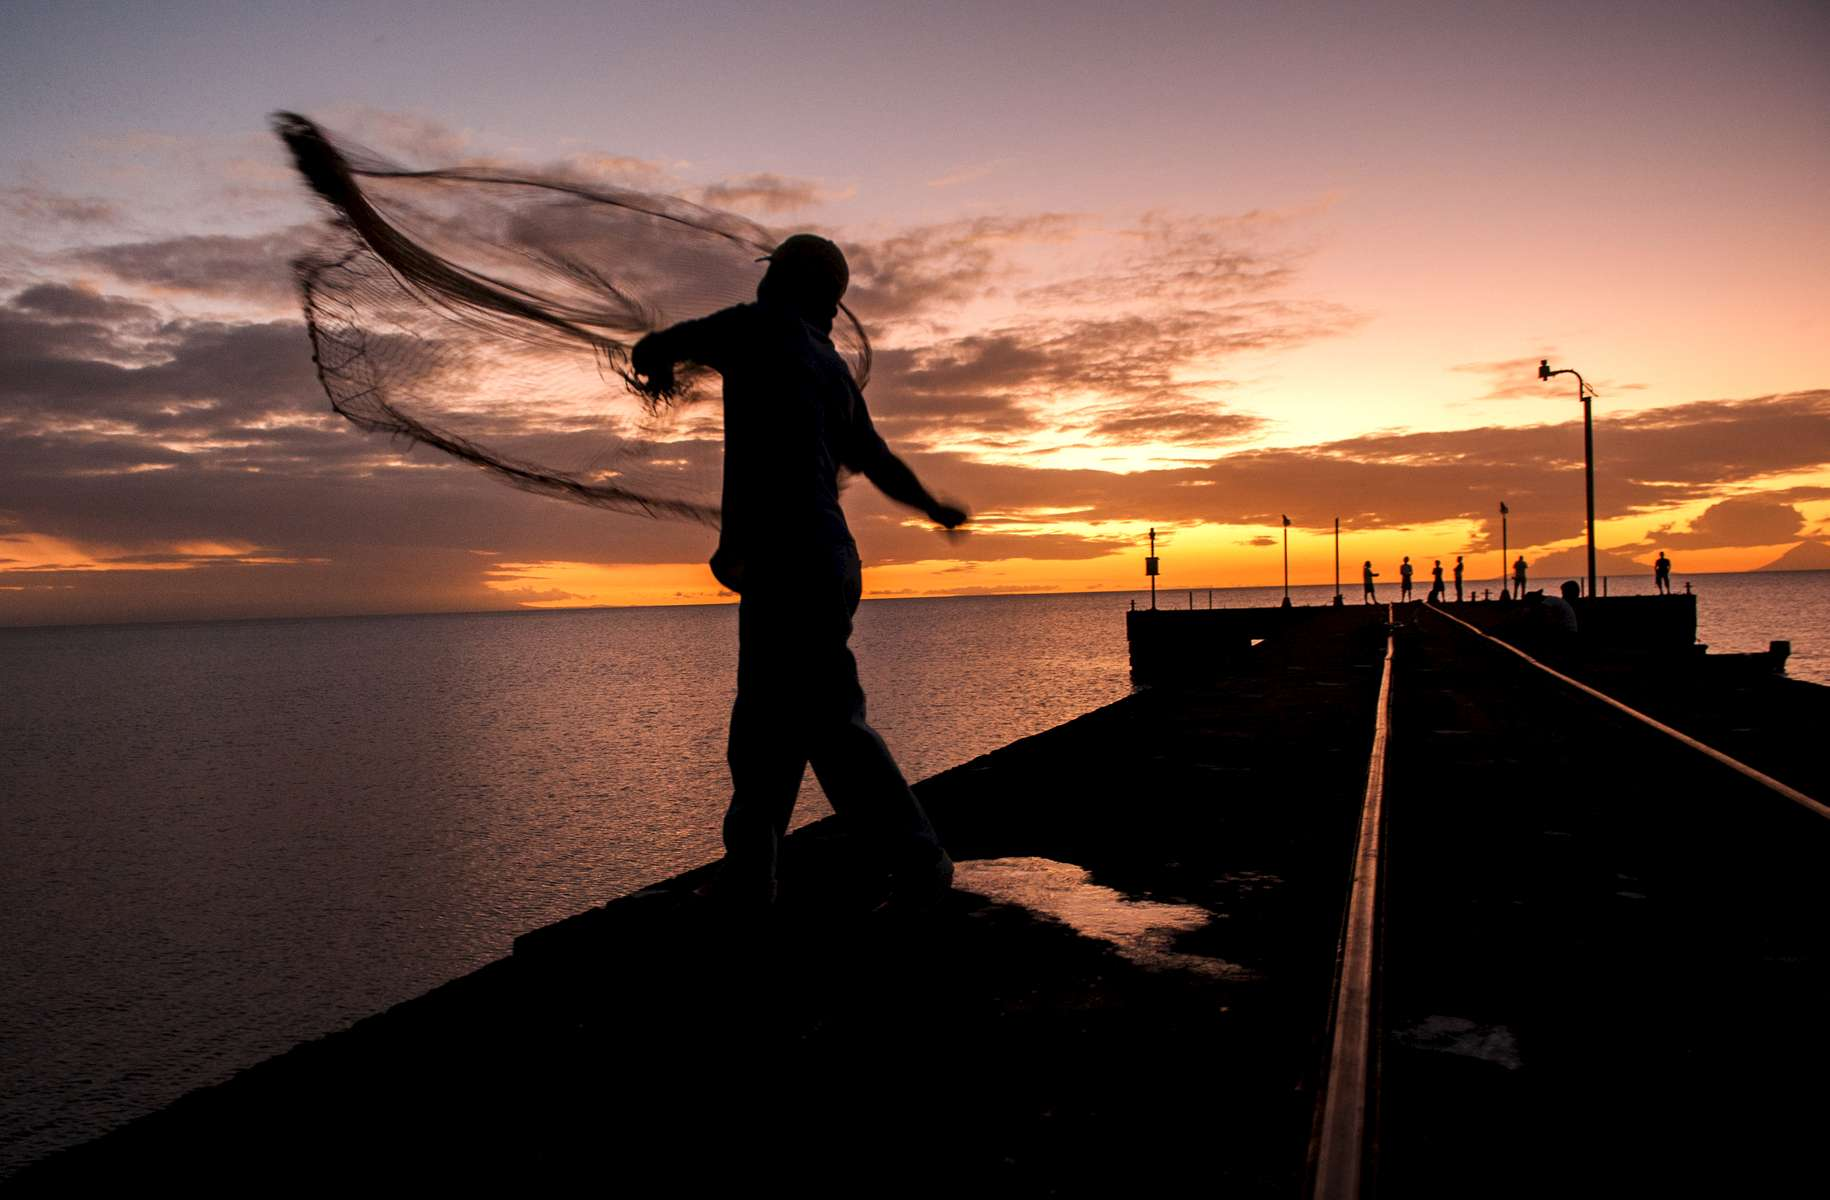 Fishing in Lake Nicaragua, Martin Correa throws out a net at sunset from at pier at San Miguelito.